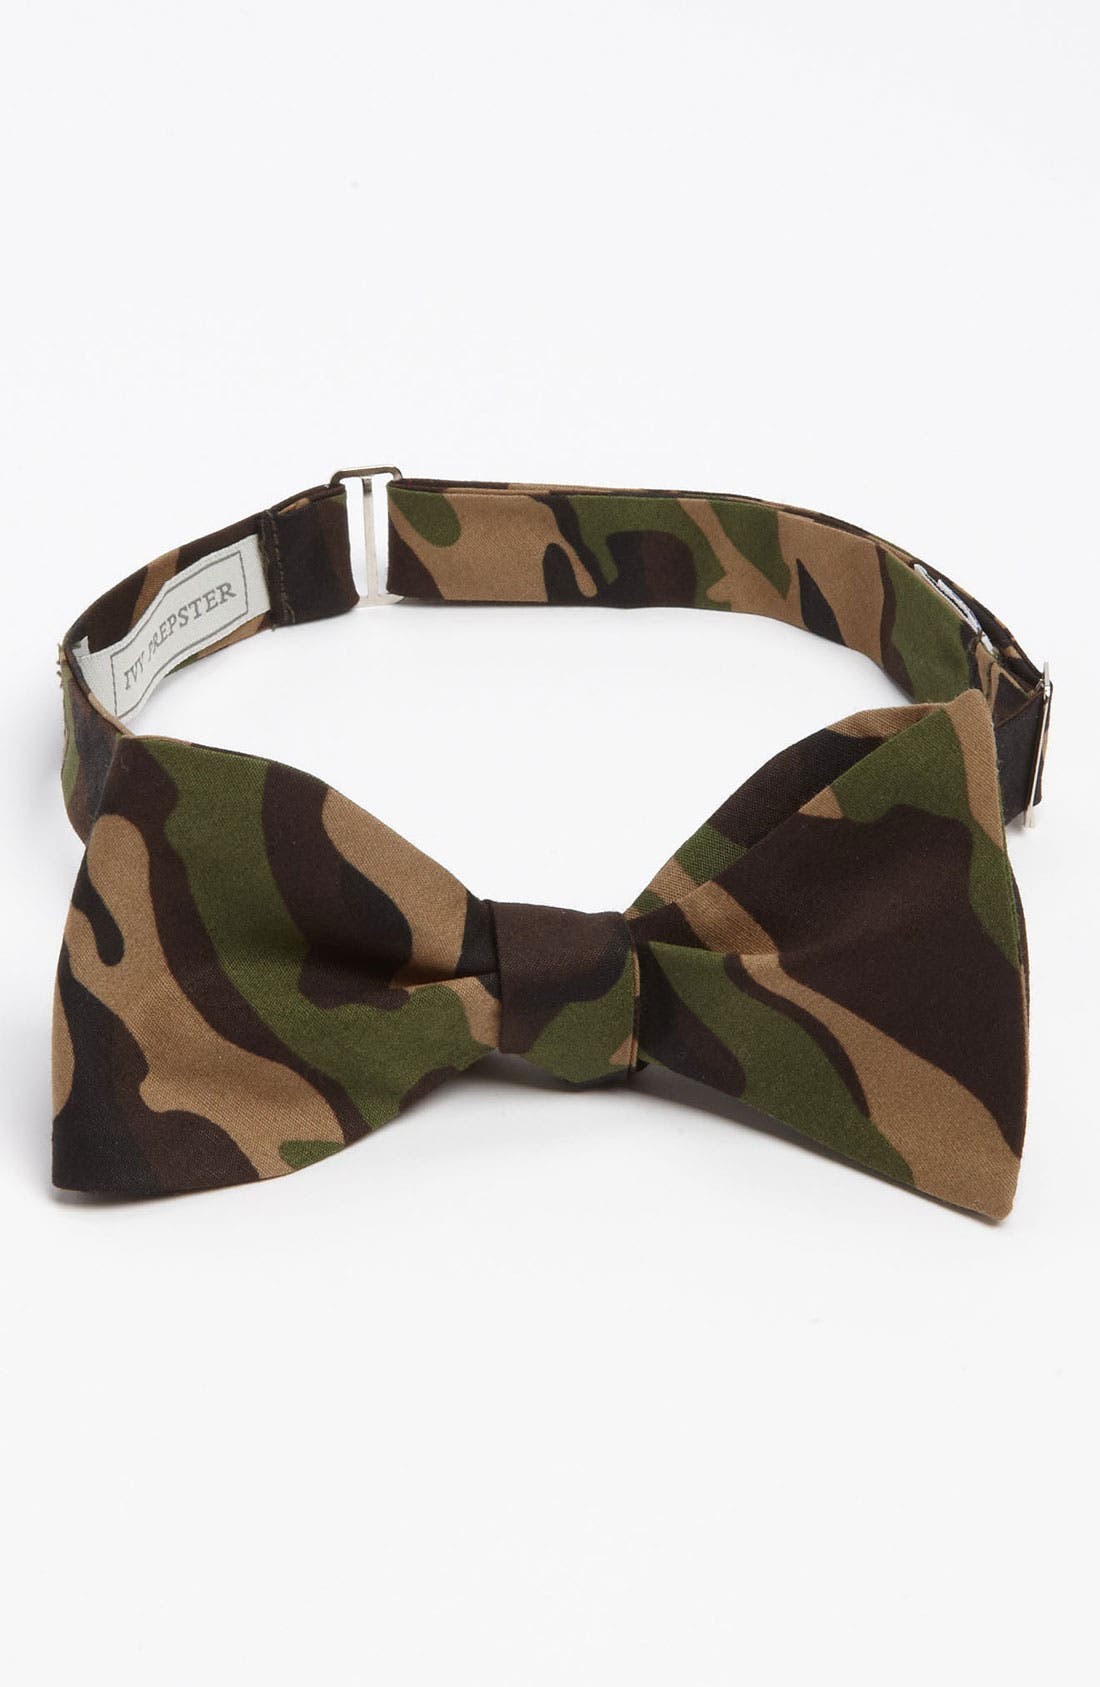 IVY PREPSTER, Camo Bow Tie, Main thumbnail 1, color, 348